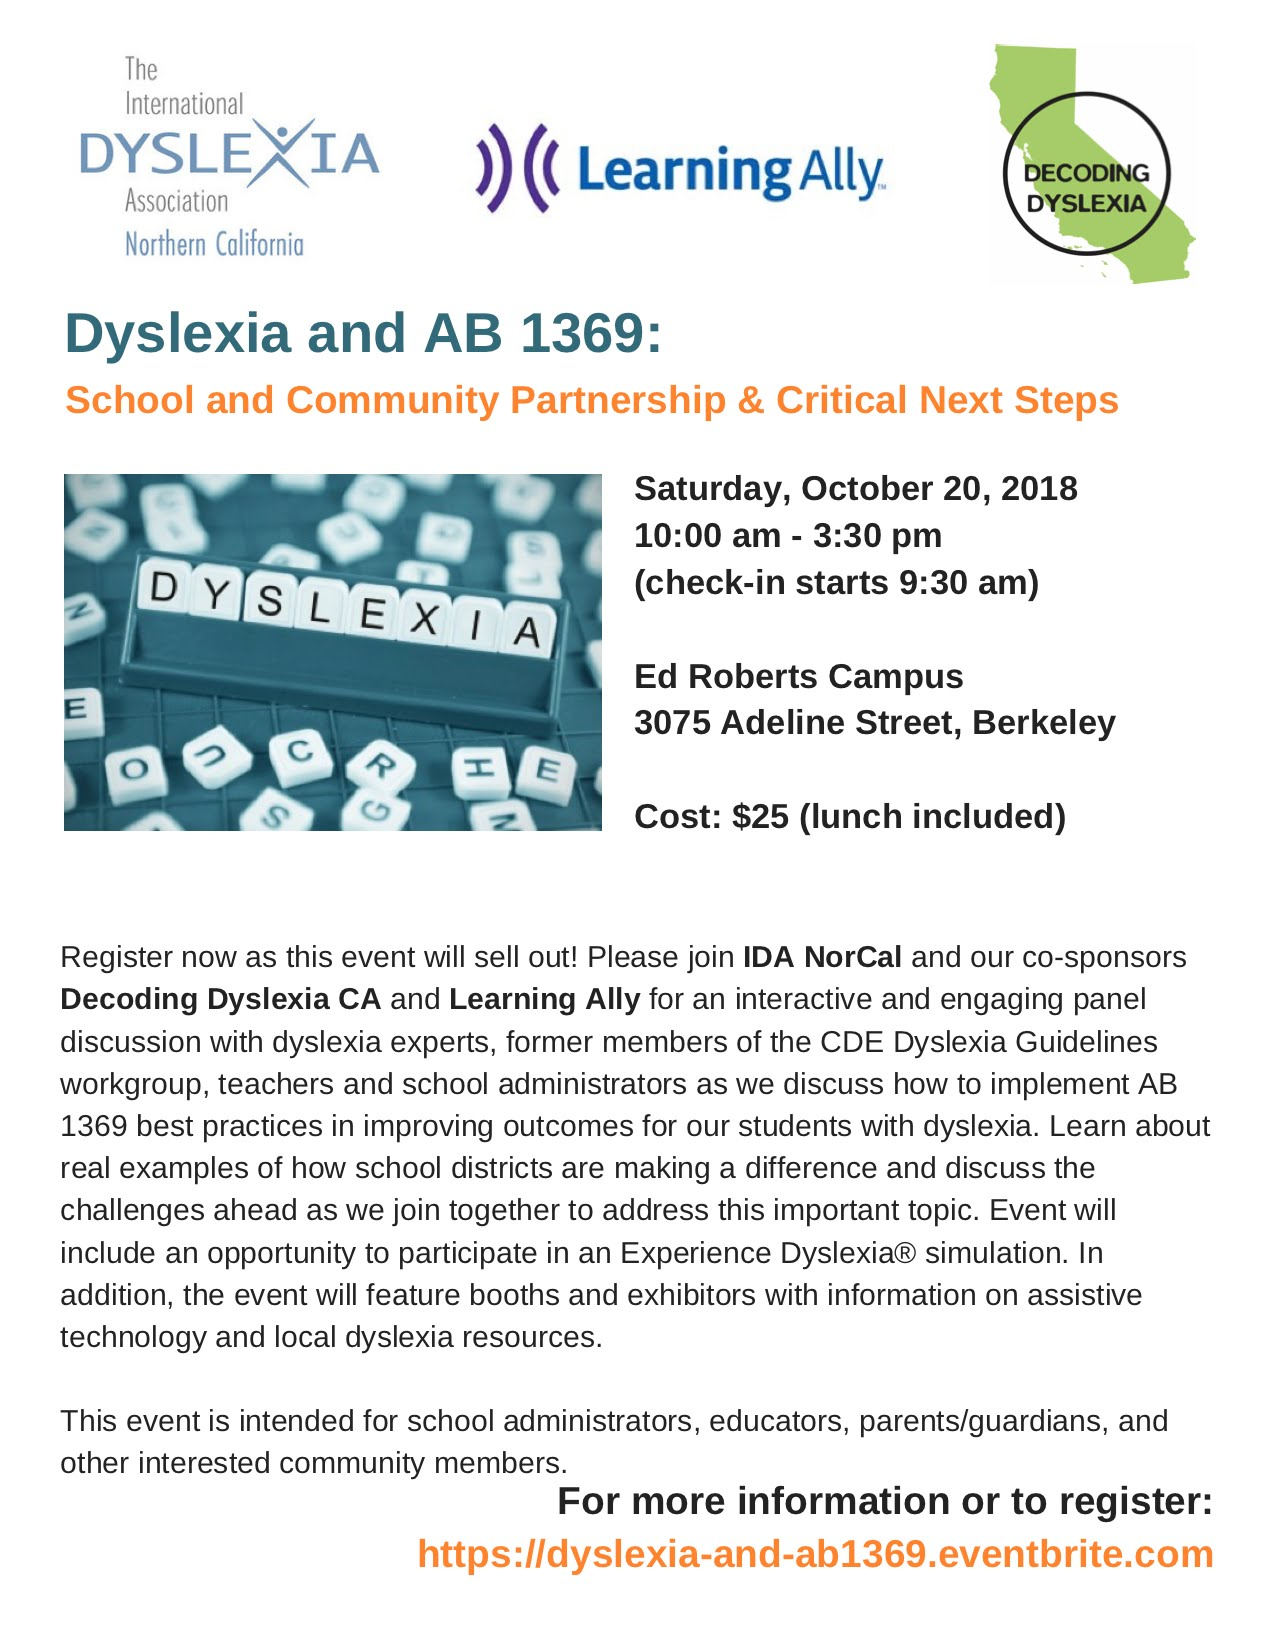 https://www.eventbrite.com/e/dyslexia-and-ab-1369-school-and-community-partnership-critical-next-steps-tickets-49229338276?aff=ebdshpsearchautocomplete